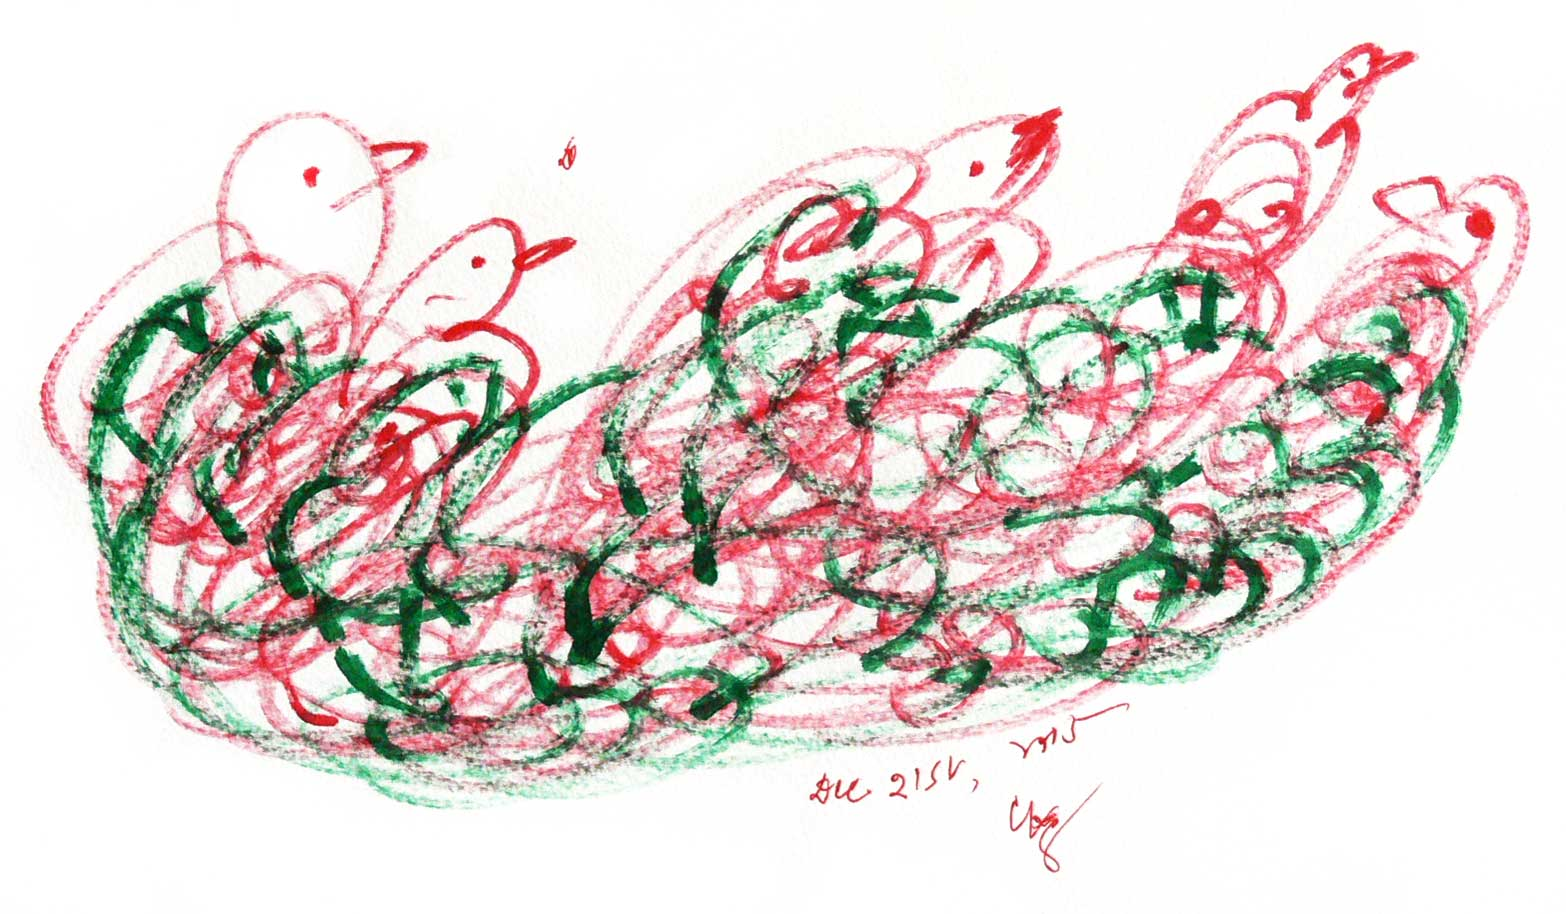 Bird-Drawing-by-Sri-Chinmoy-21-12-2005-5b